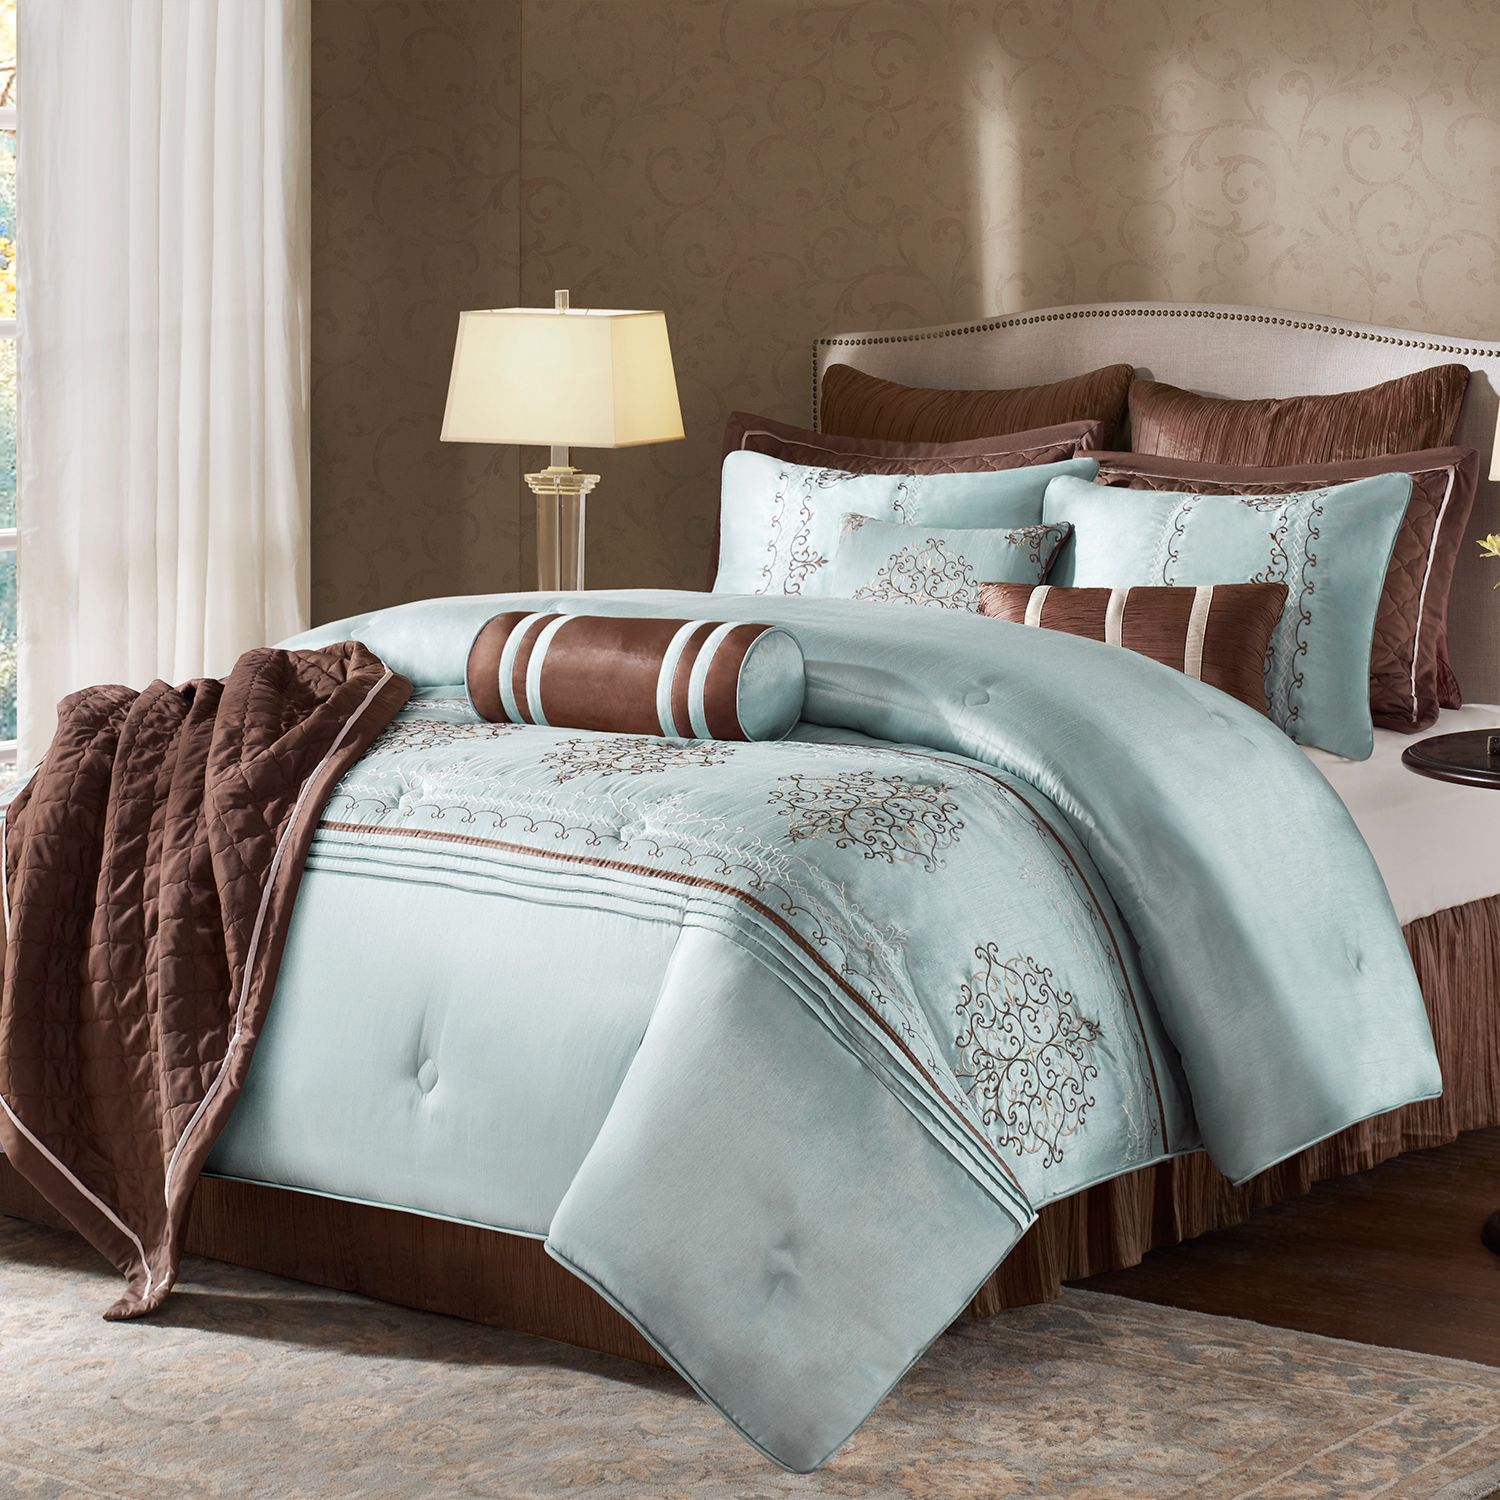 bed designer satin wedding bedding at proddetail double embroidery rs set